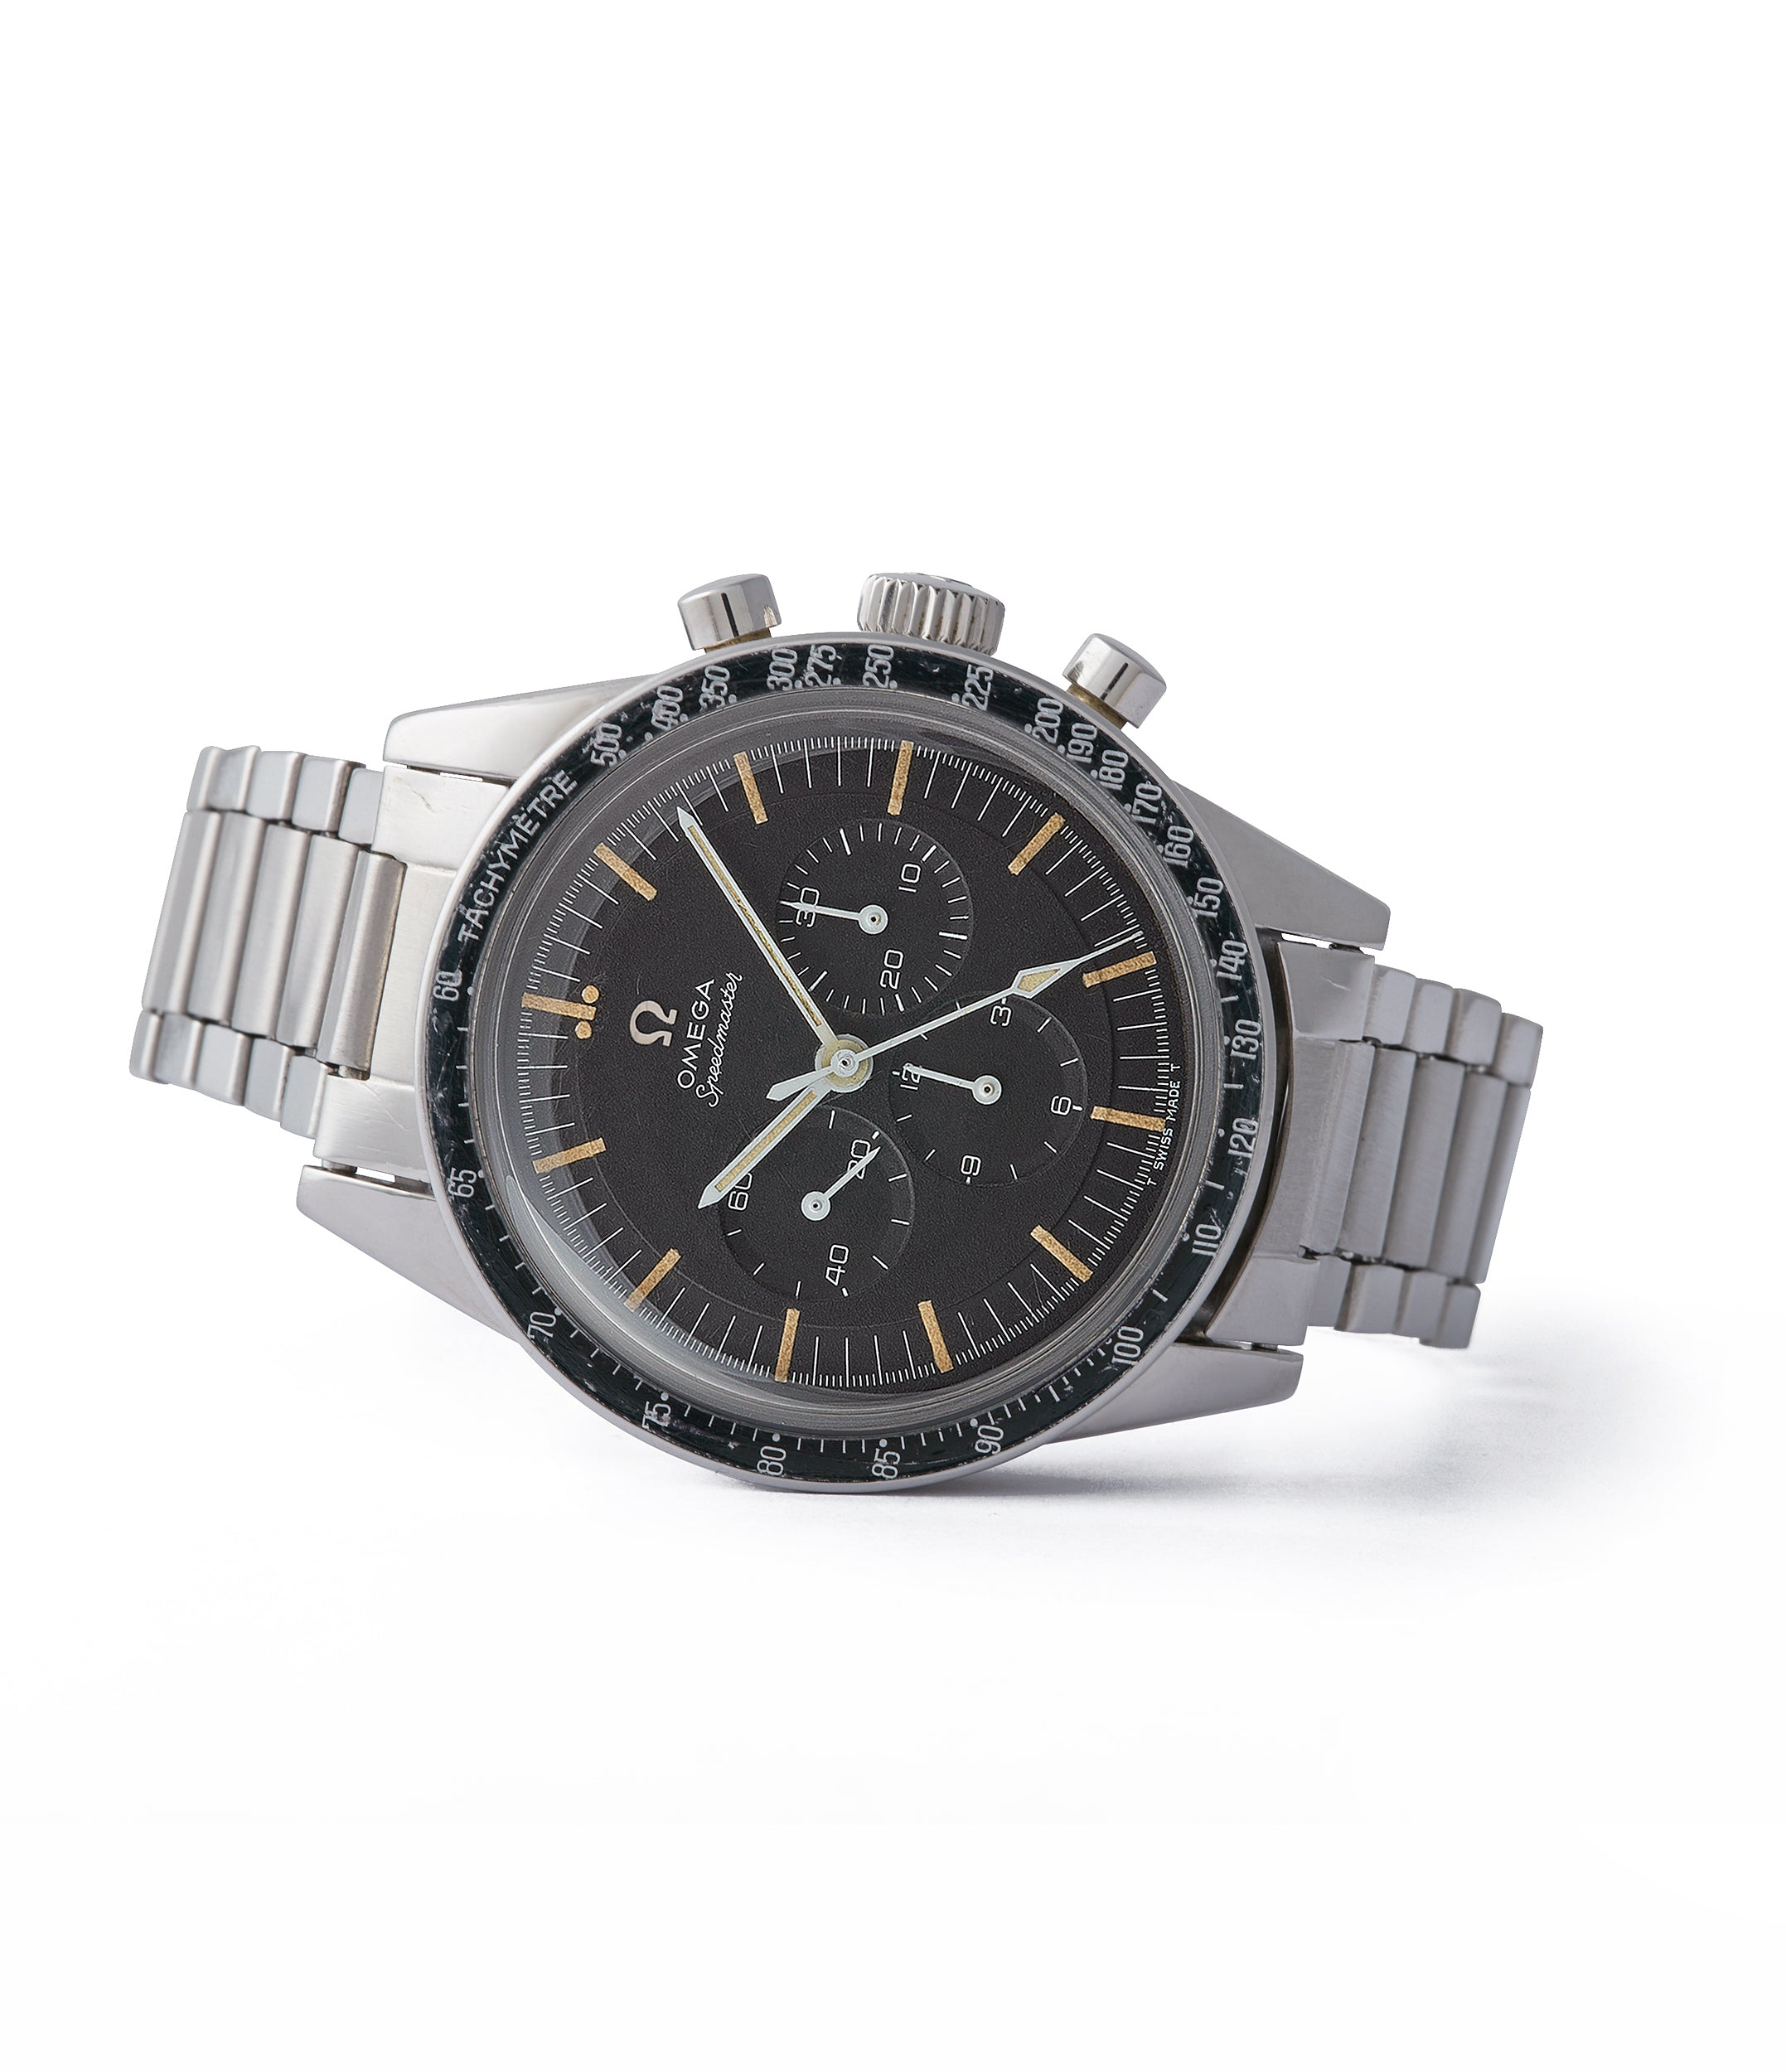 Omega vintage Speedmaster pre-professional Ed White 105.003-65 steel chronograph sports watch online at A Collected Man London